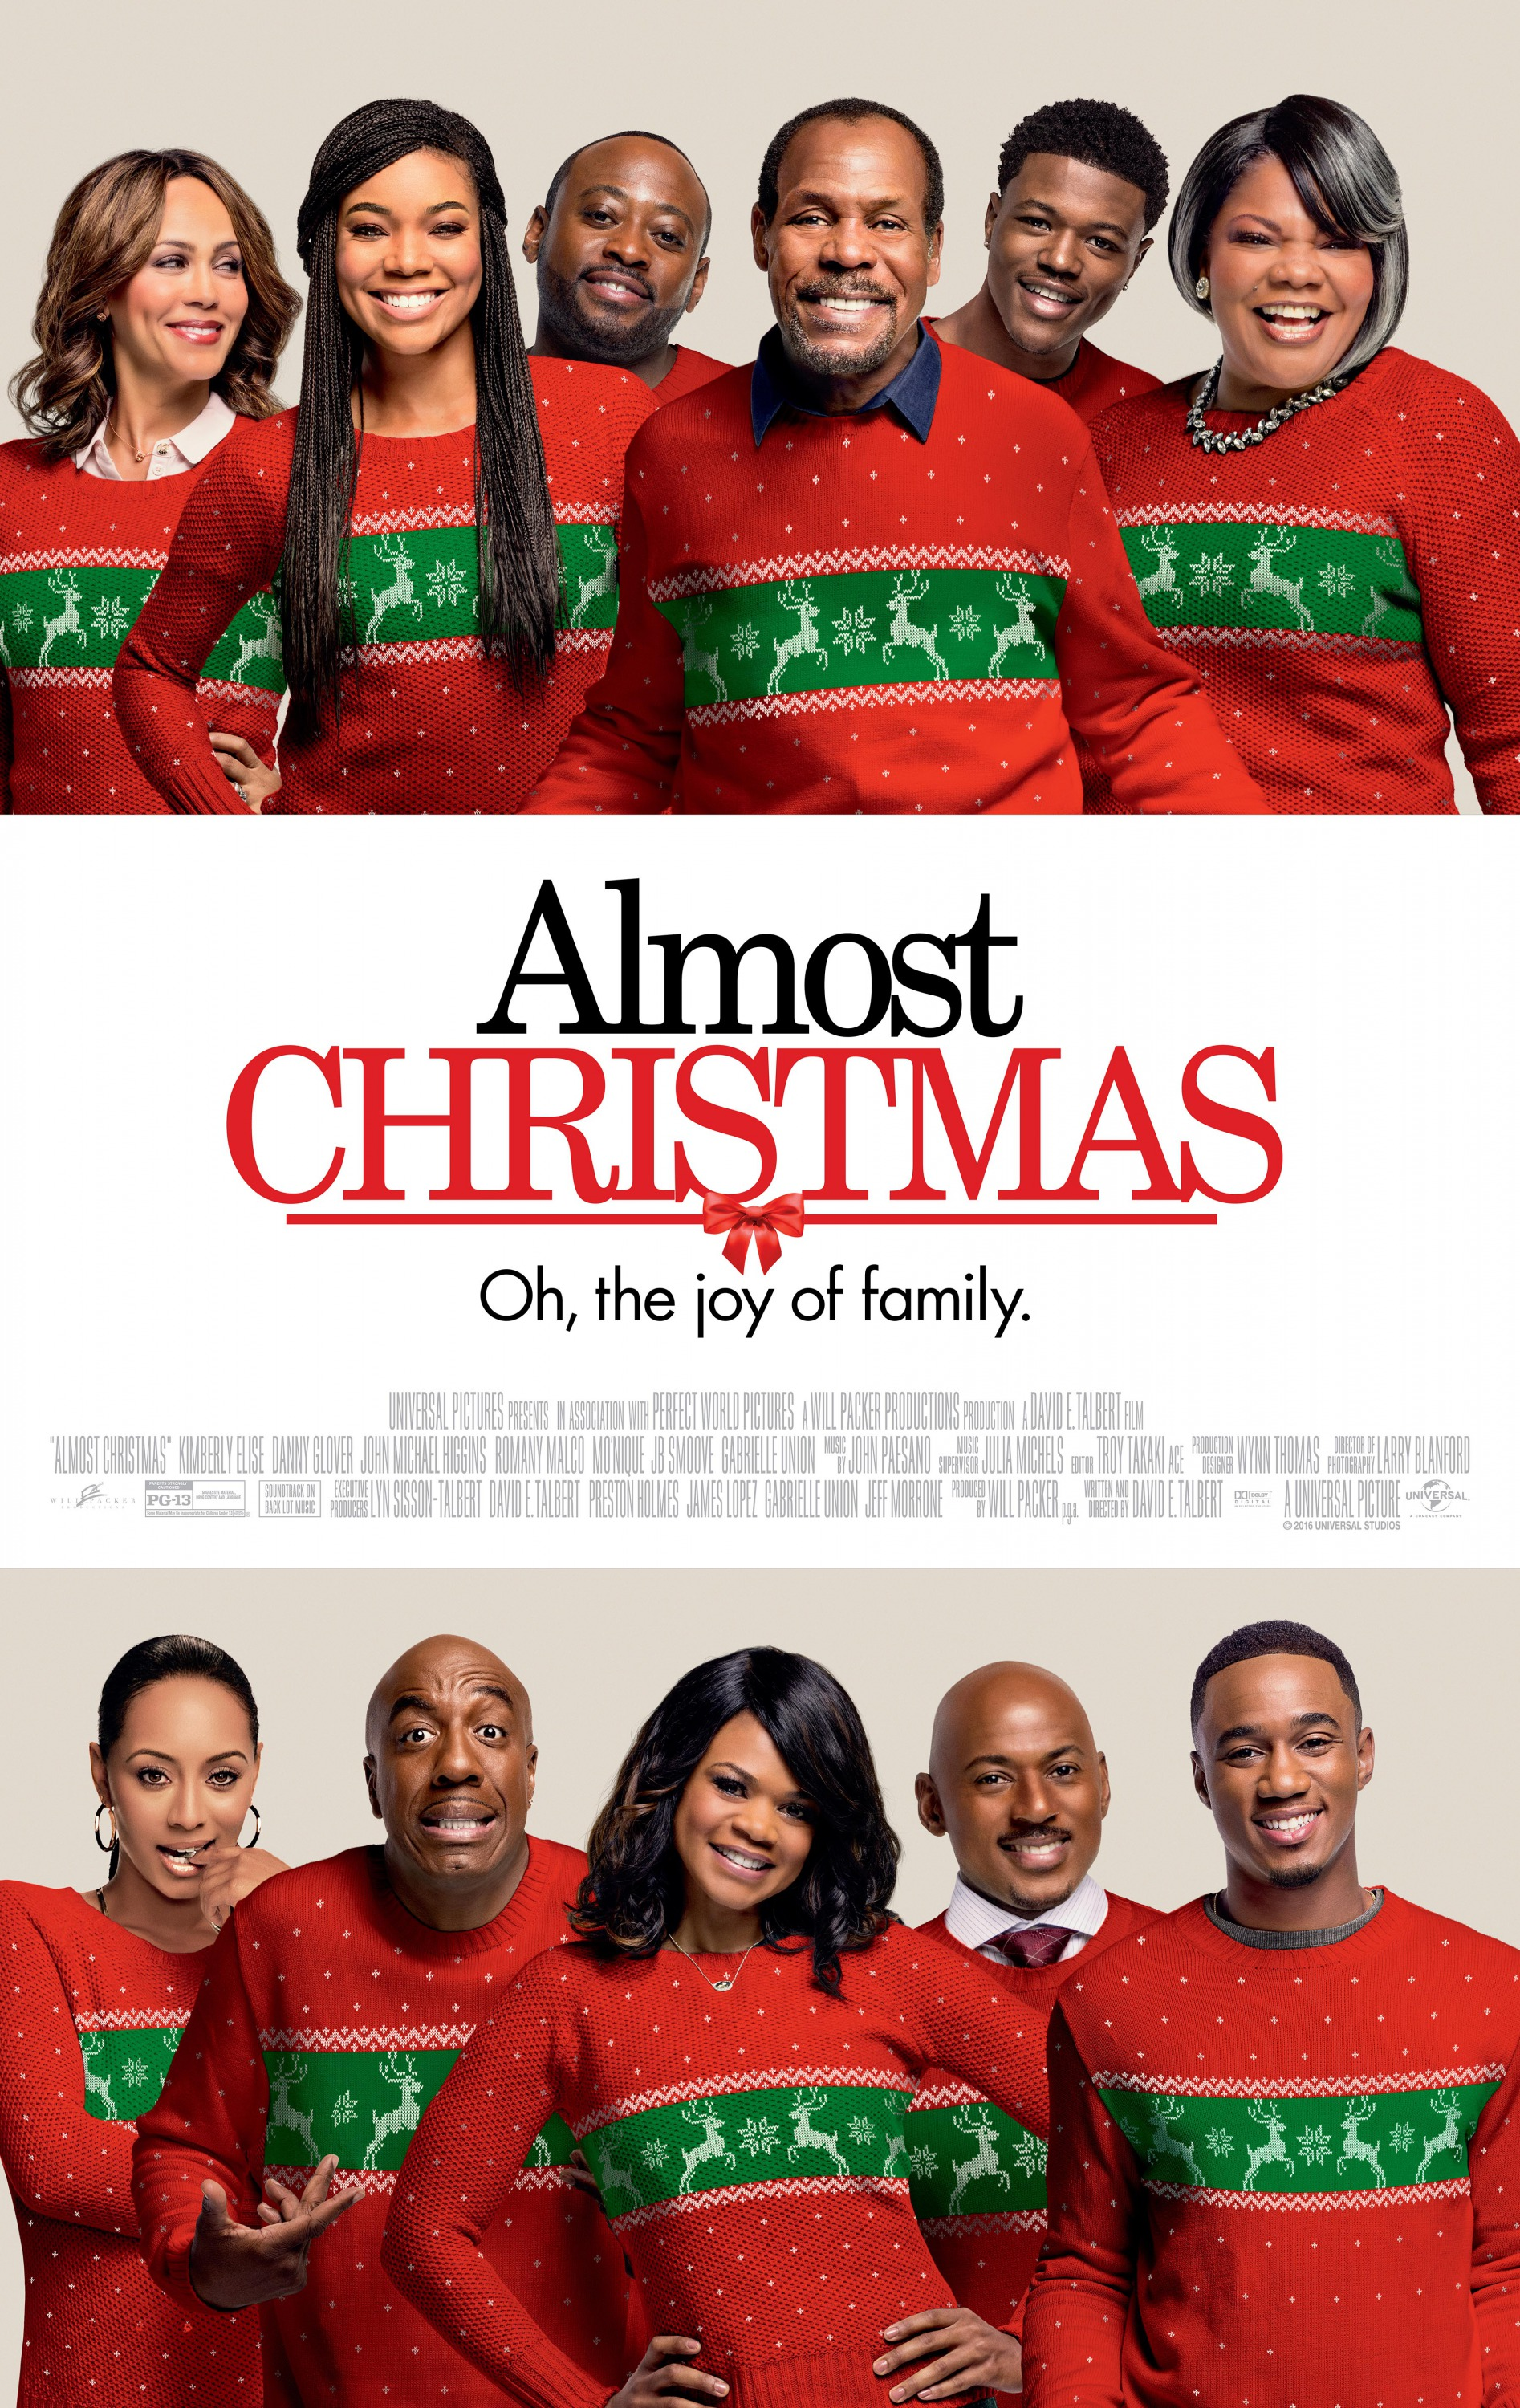 Almost Christmas (2016) | Scratchpad | FANDOM powered by Wikia